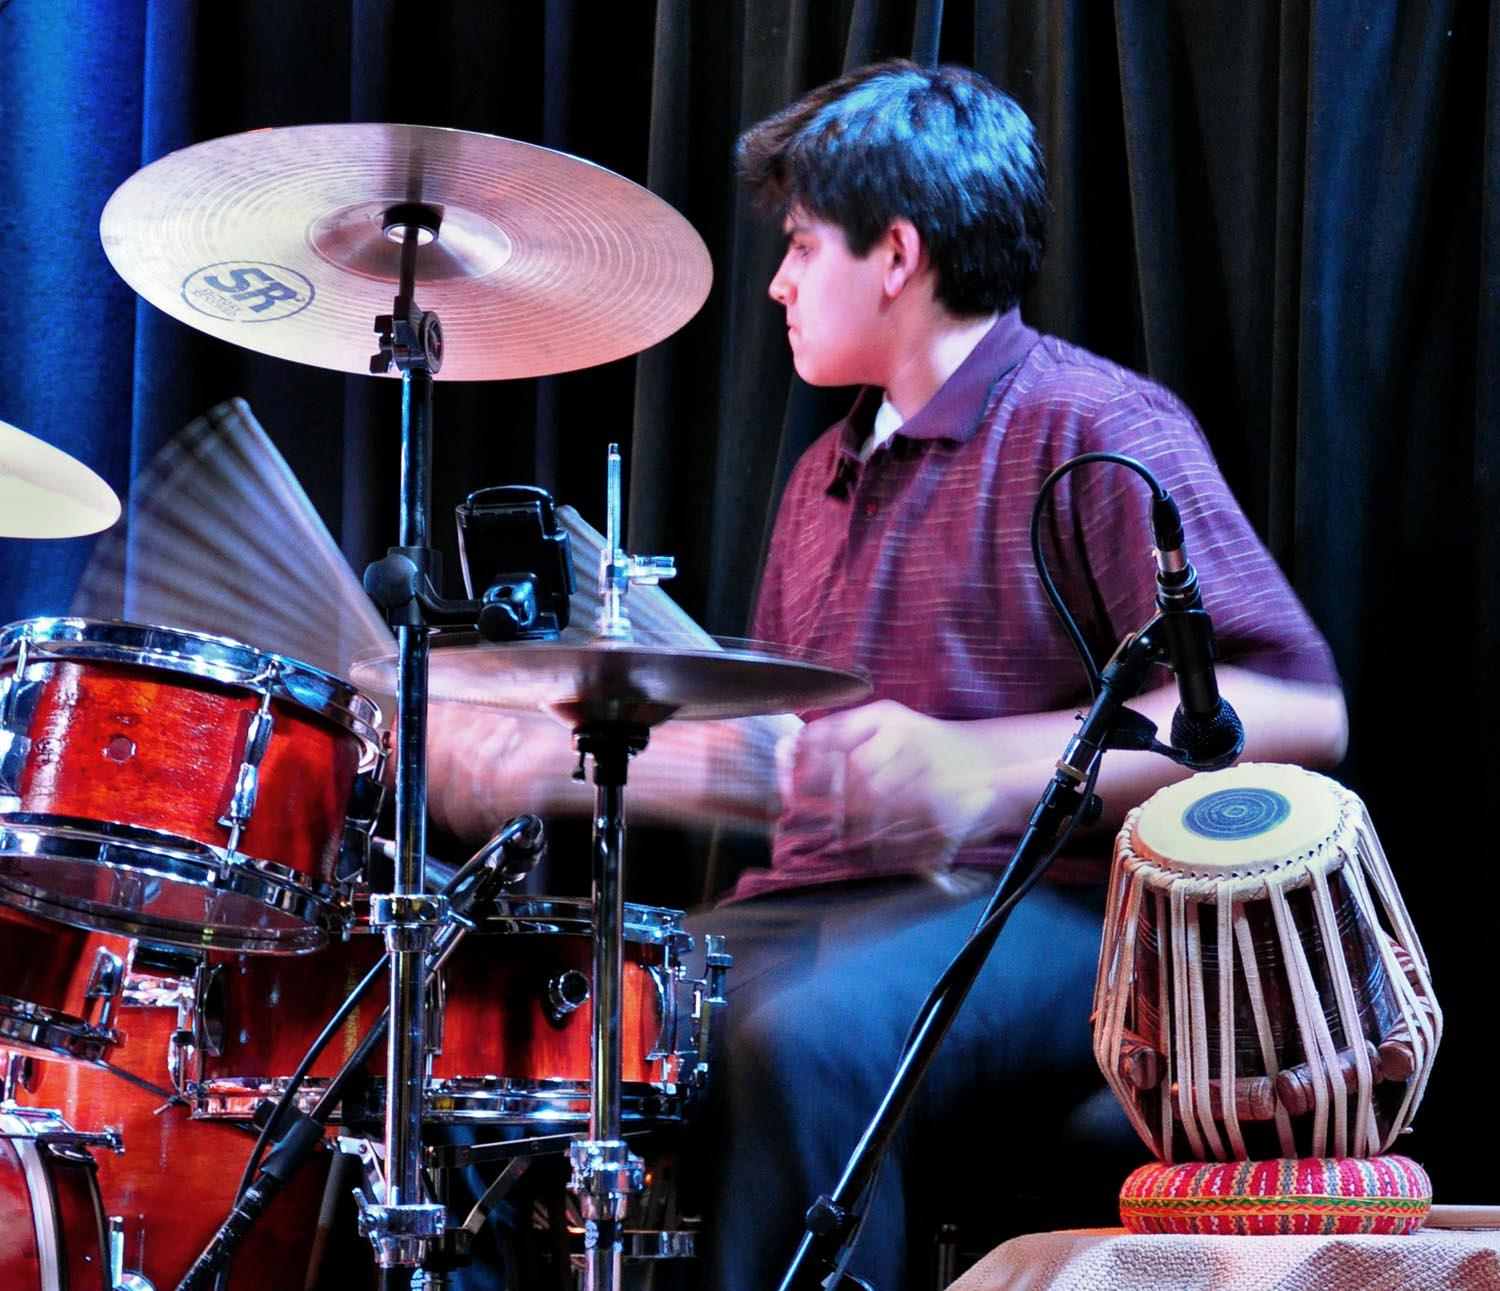 Keshav Batish on drum set - Sitar Power live at the Kuumbwa Jazz Center, Santa Cruz. All rights reserved. �2012 Ashwin Batish. Copyrighted image. Photographer Chris Bratt